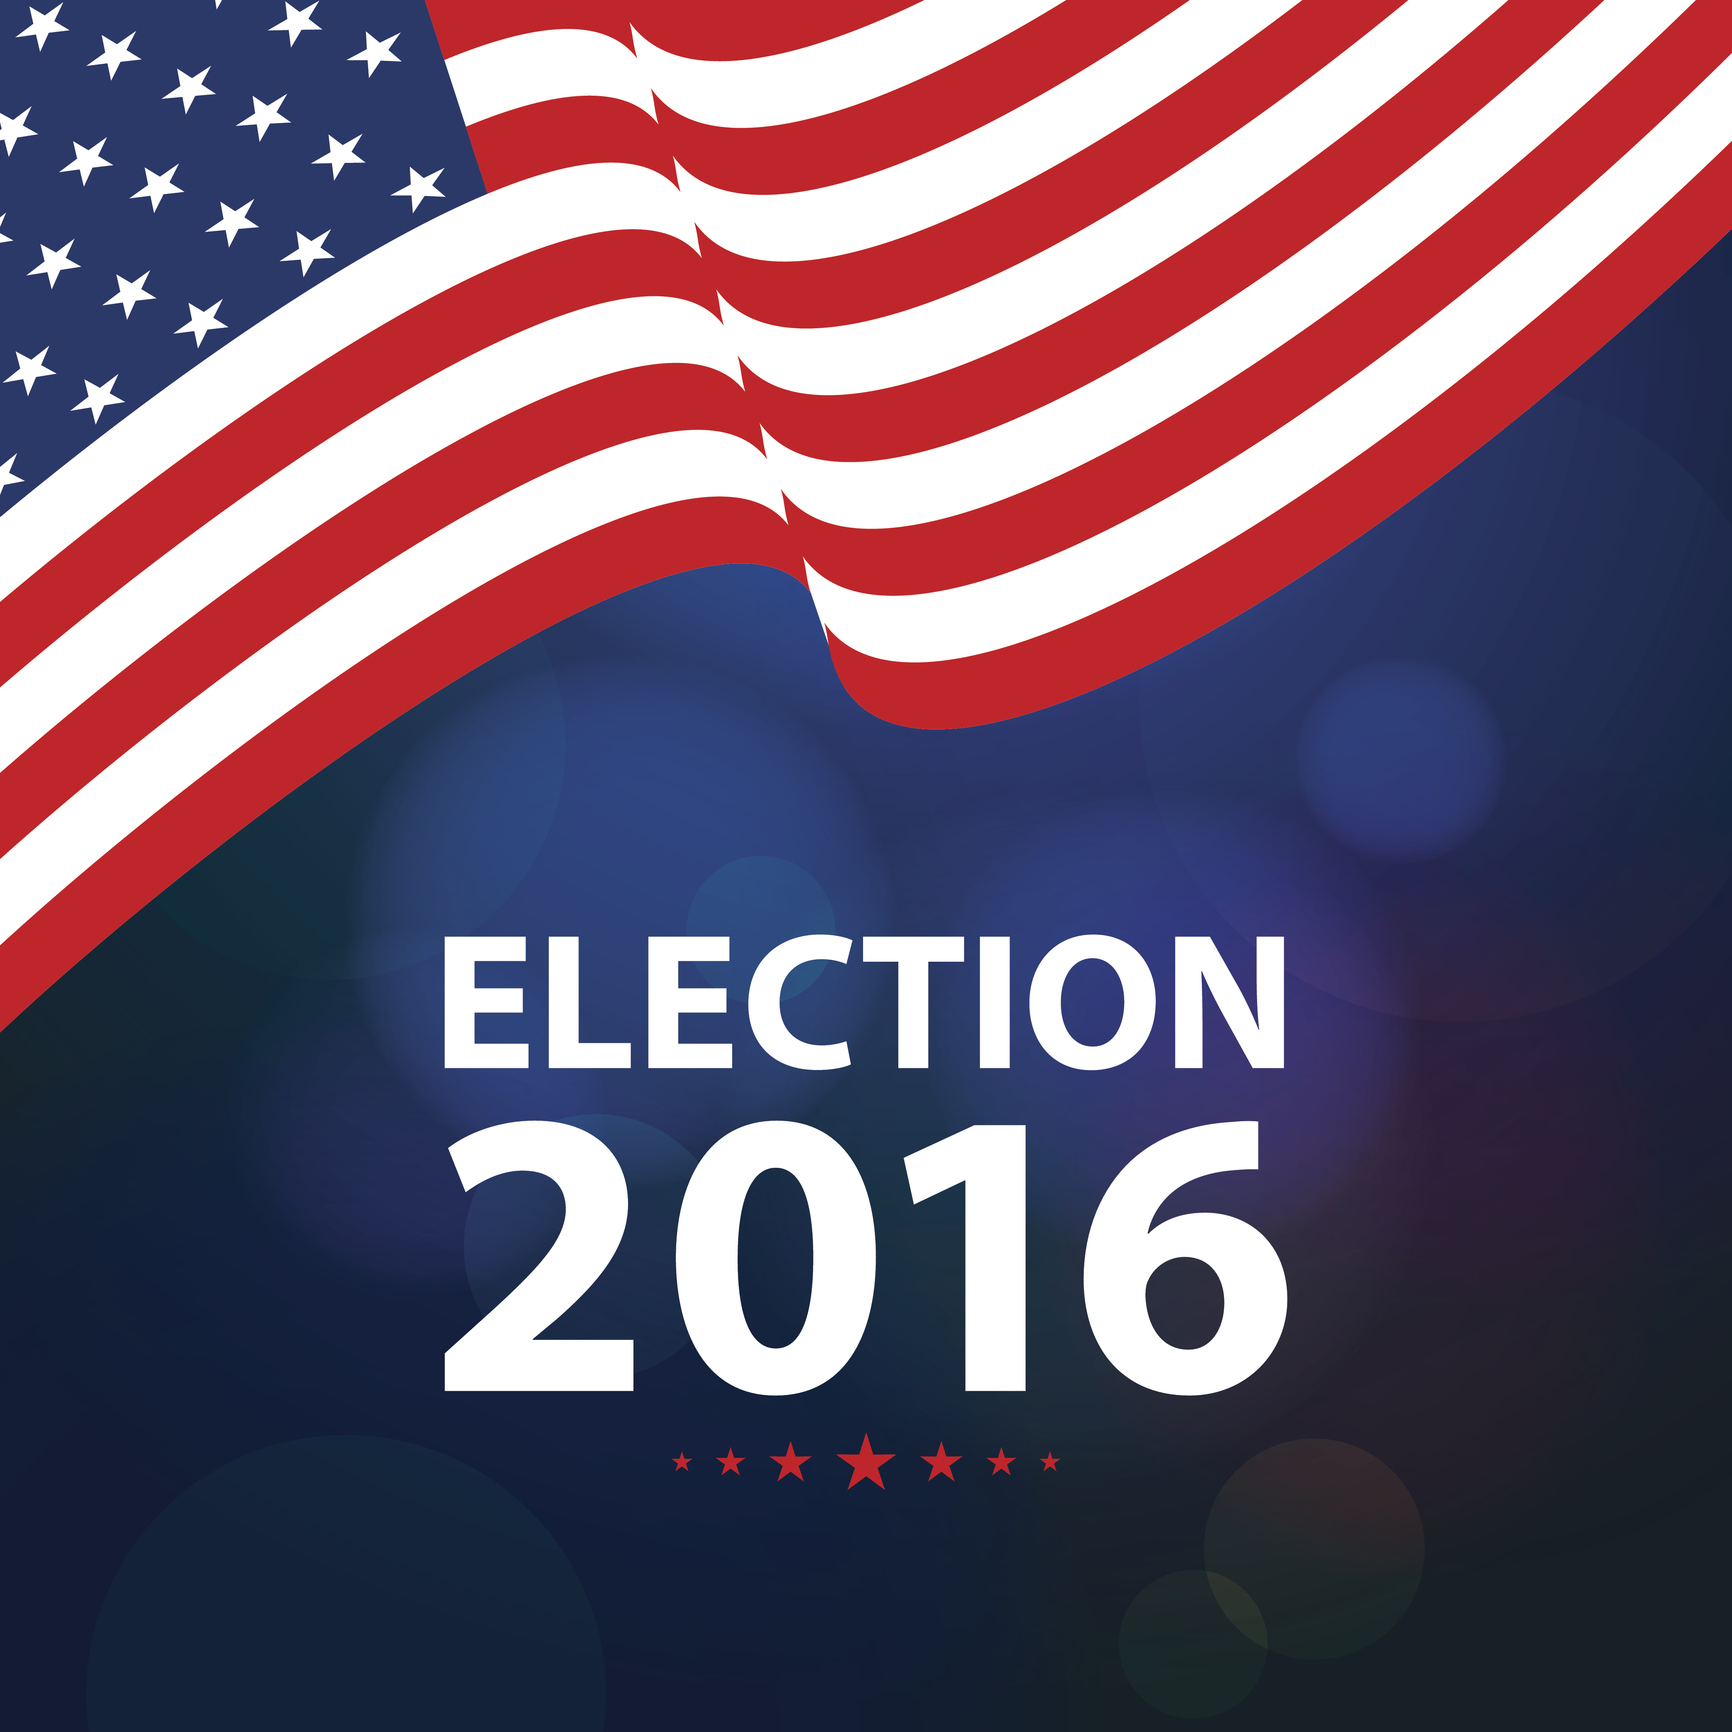 US Election 2016